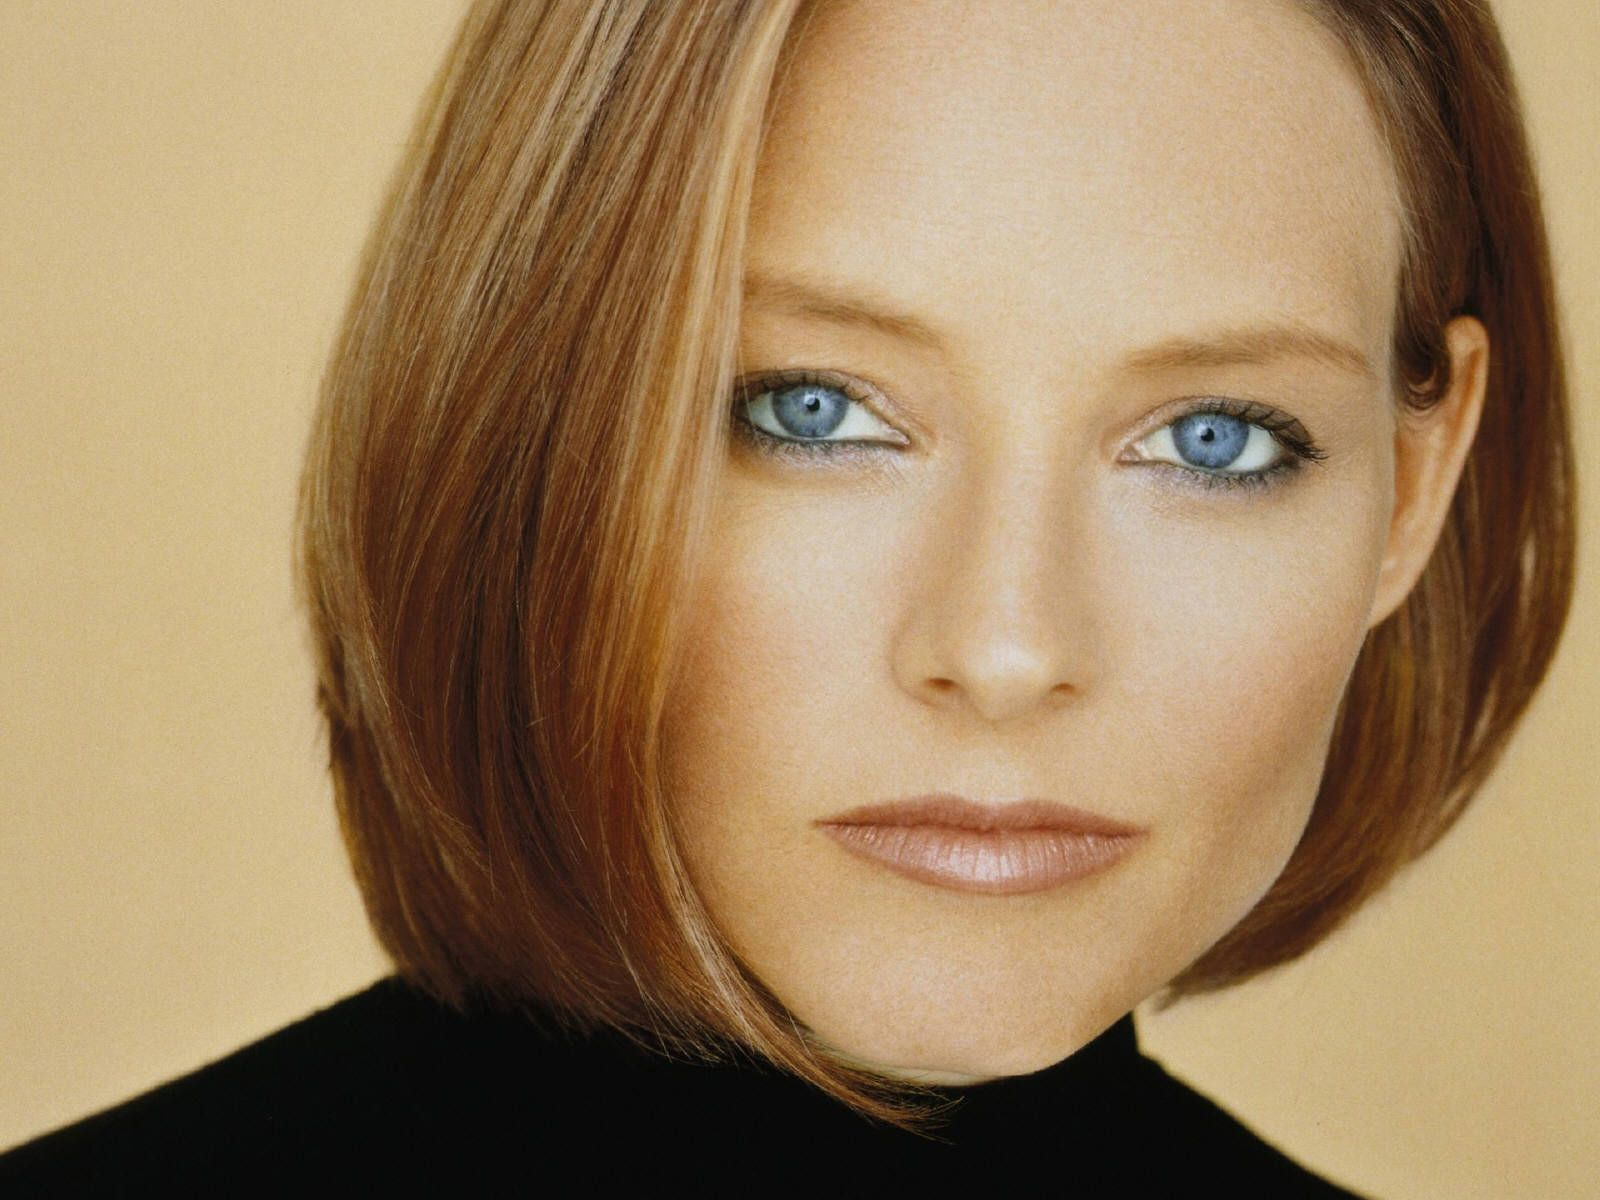 jodie foster freaky friday jodie foster actress jodie foster paper moon taxi driver bugsy malone the little girl who lives down the lane freaky friday candleshoe foxes the accused the silence of